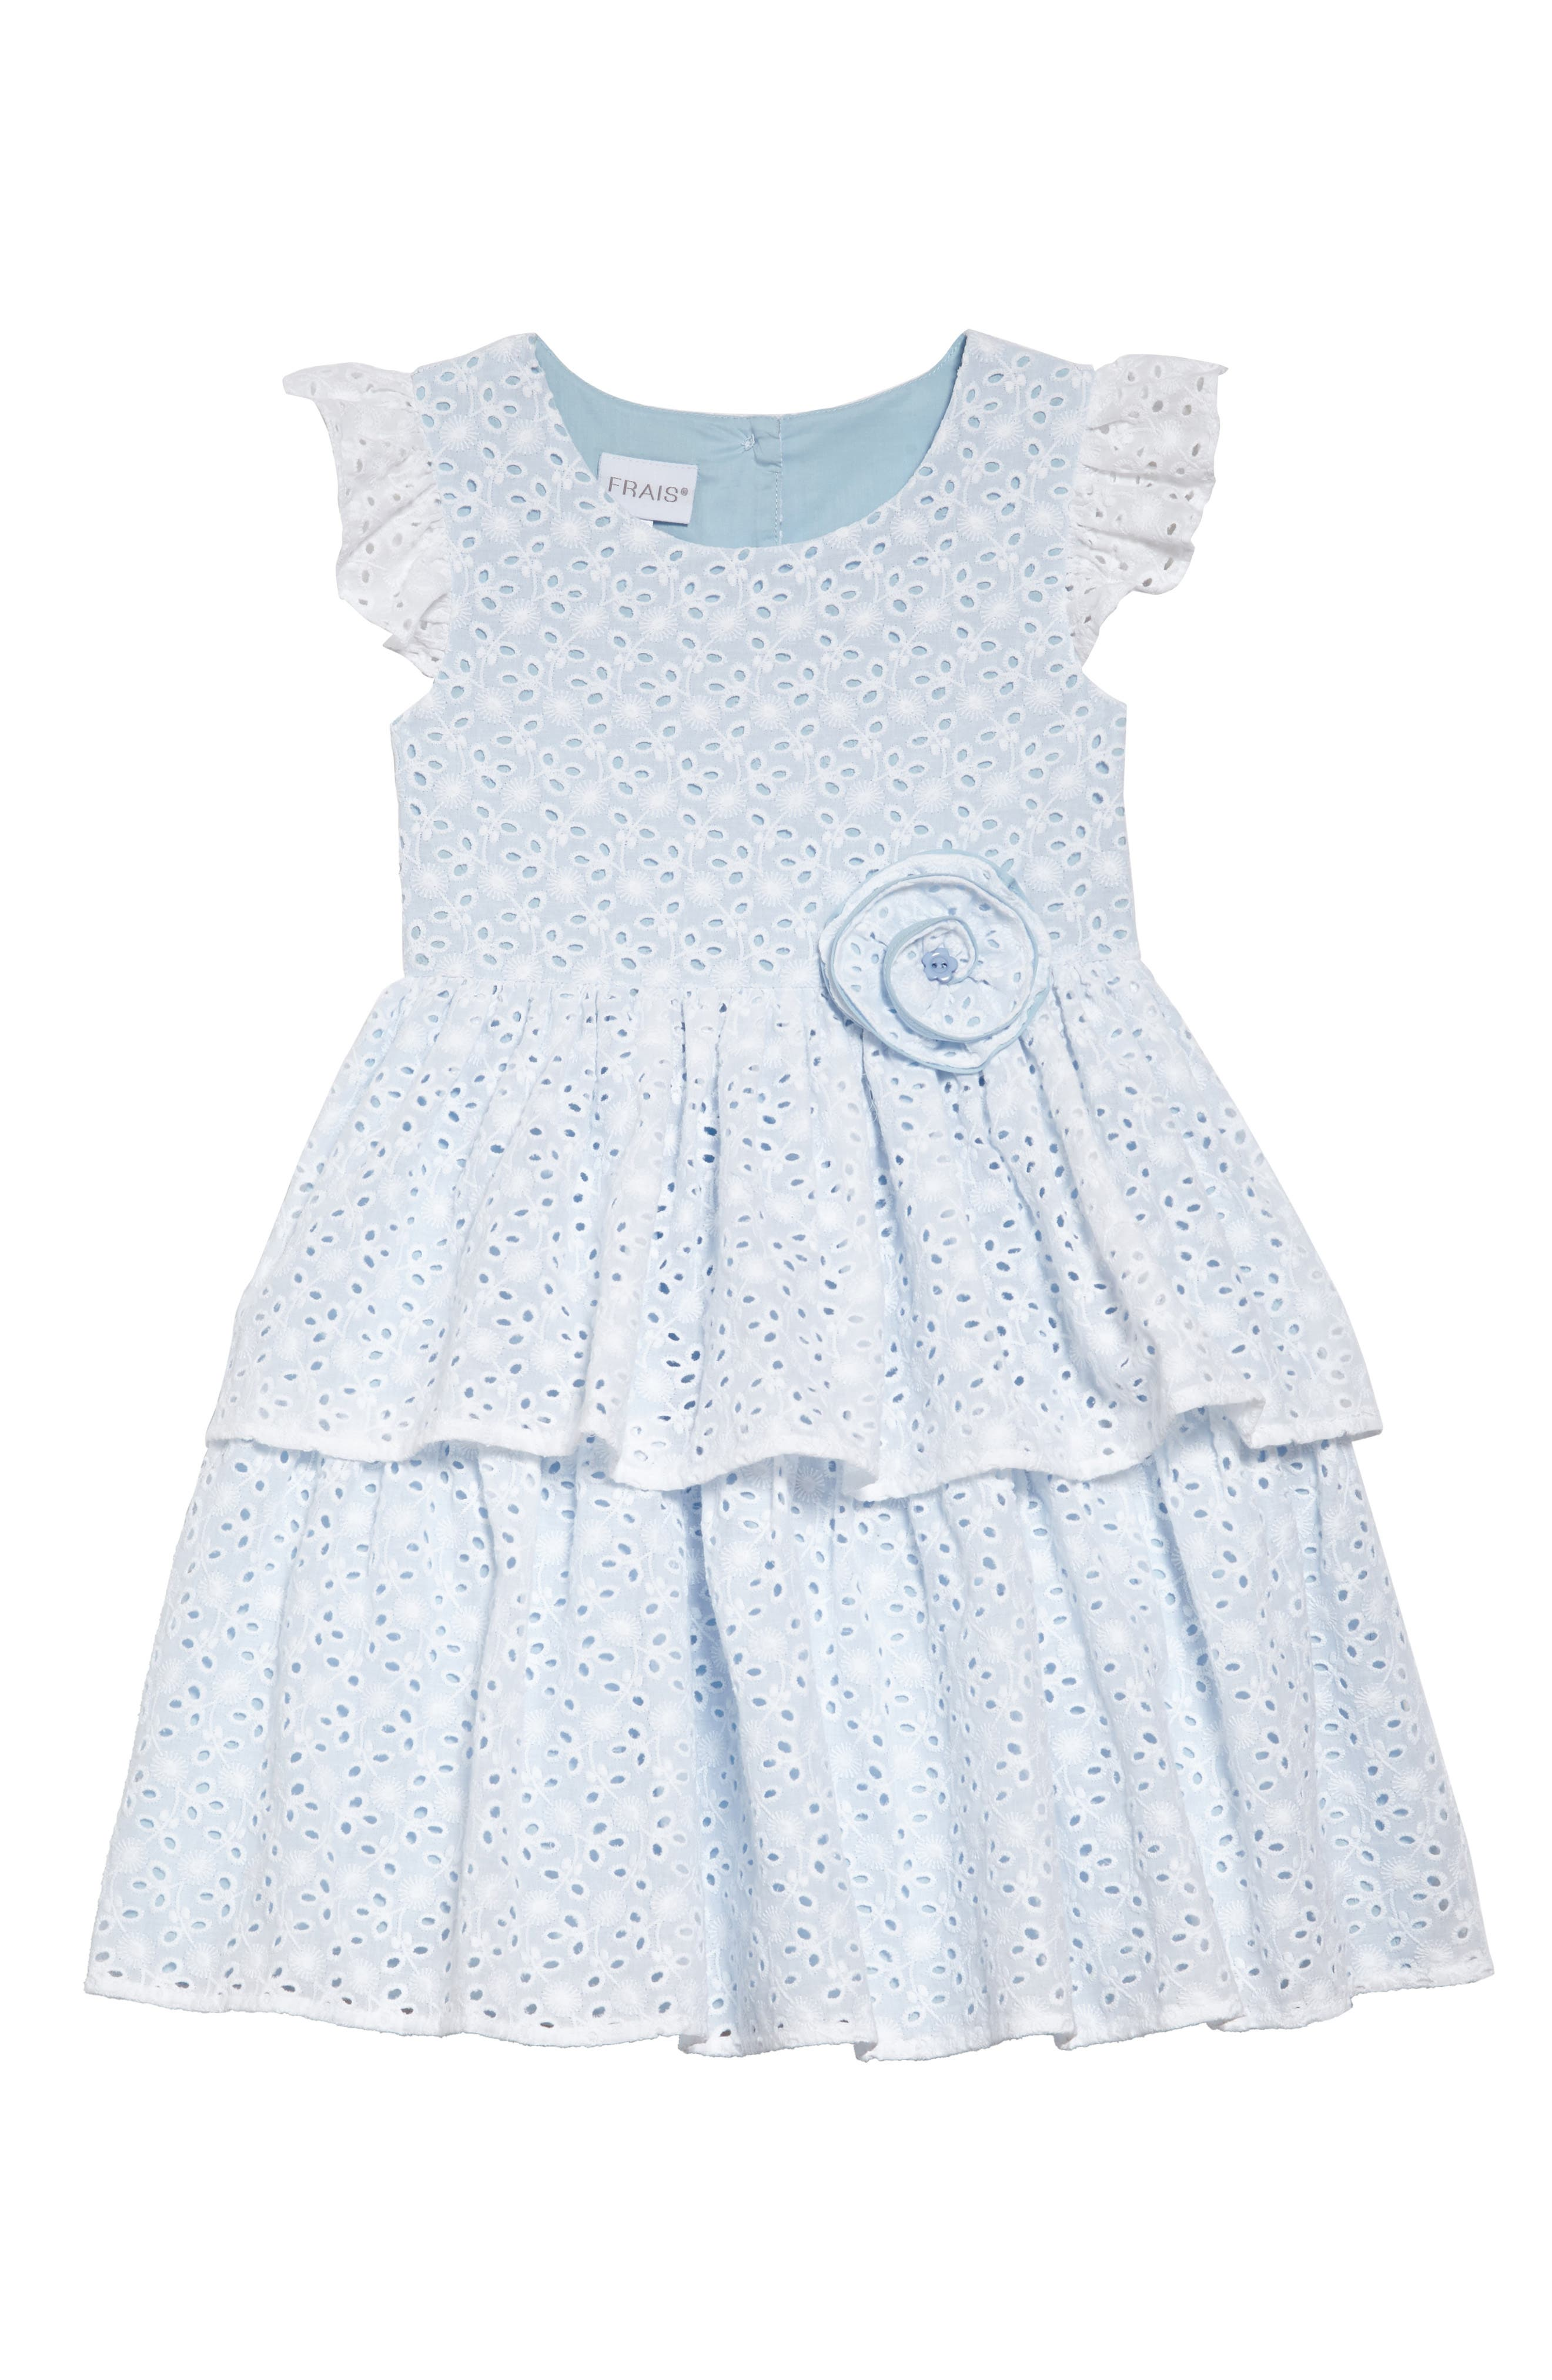 Flutter Sleeve Tiered Eyelet Dress,                             Main thumbnail 1, color,                             100